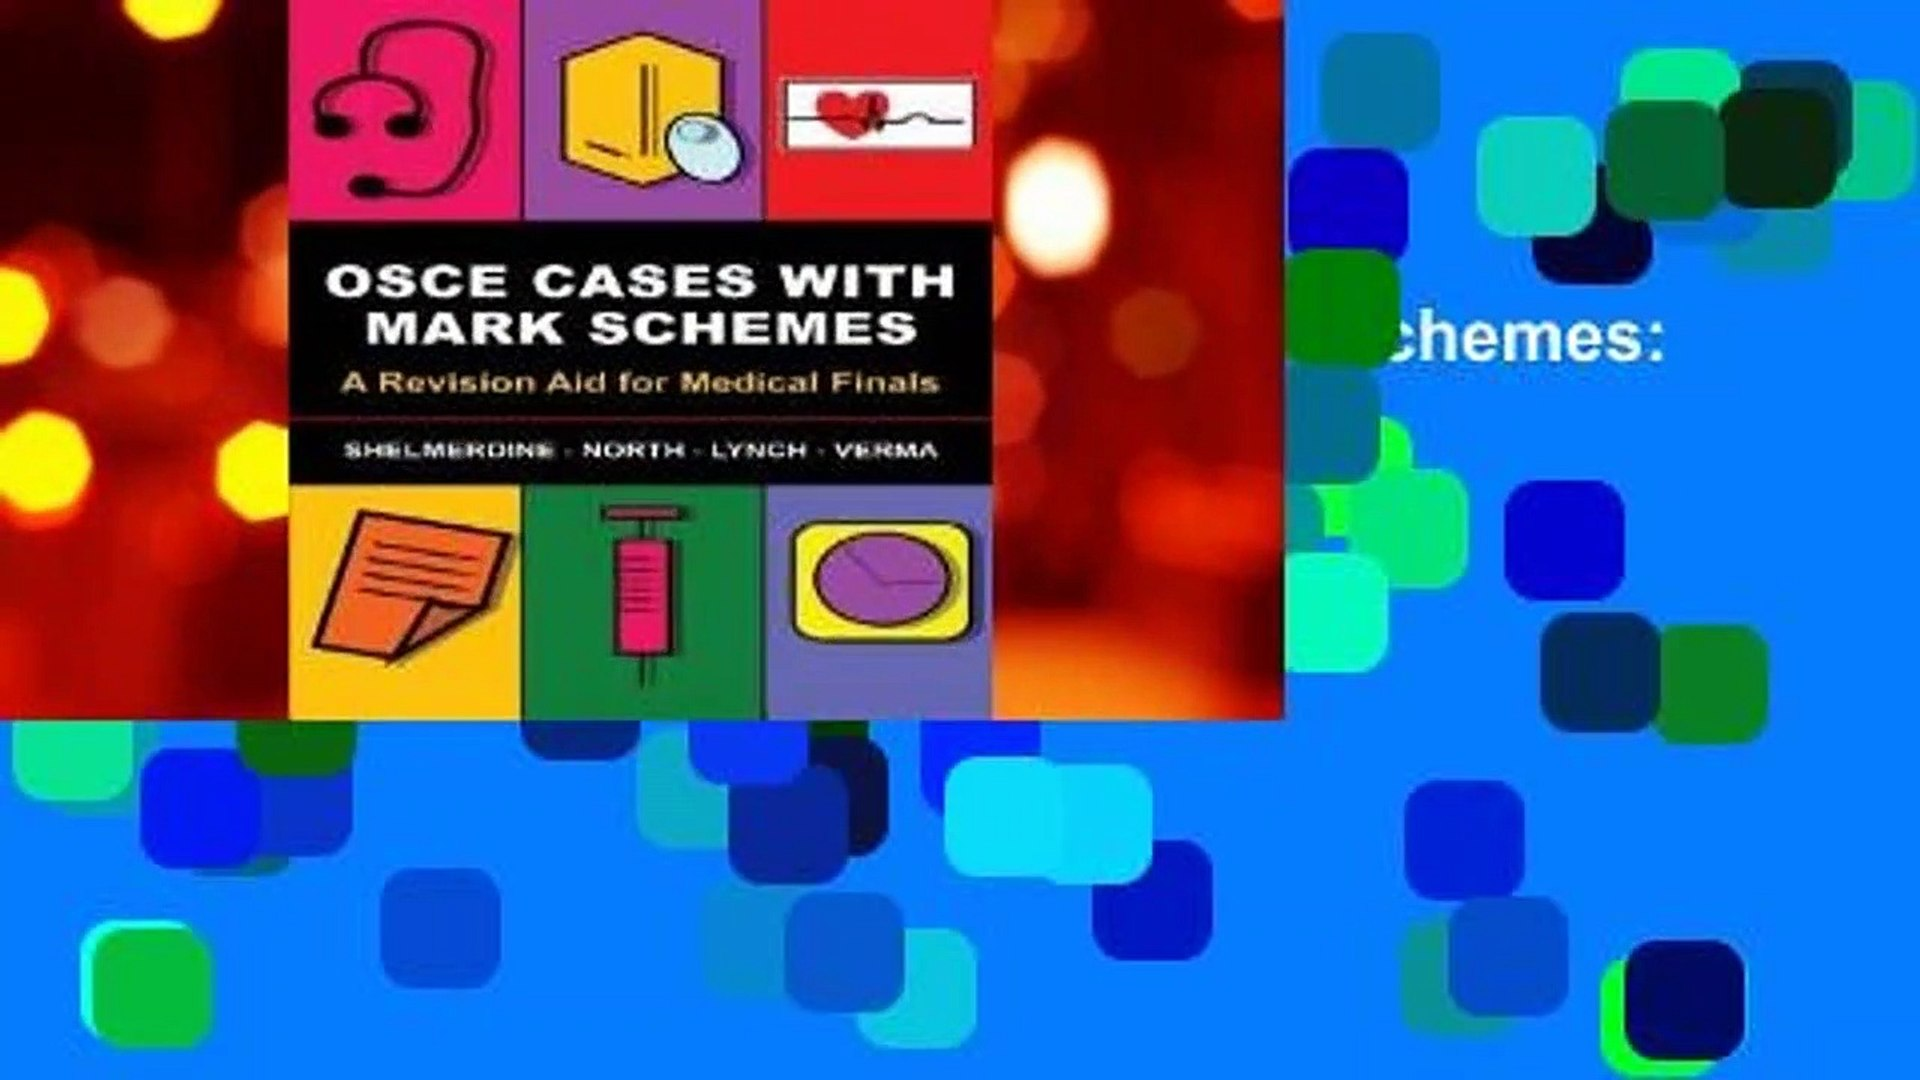 A Revision Aid for Medical Finals OSCE Cases with Mark Schemes